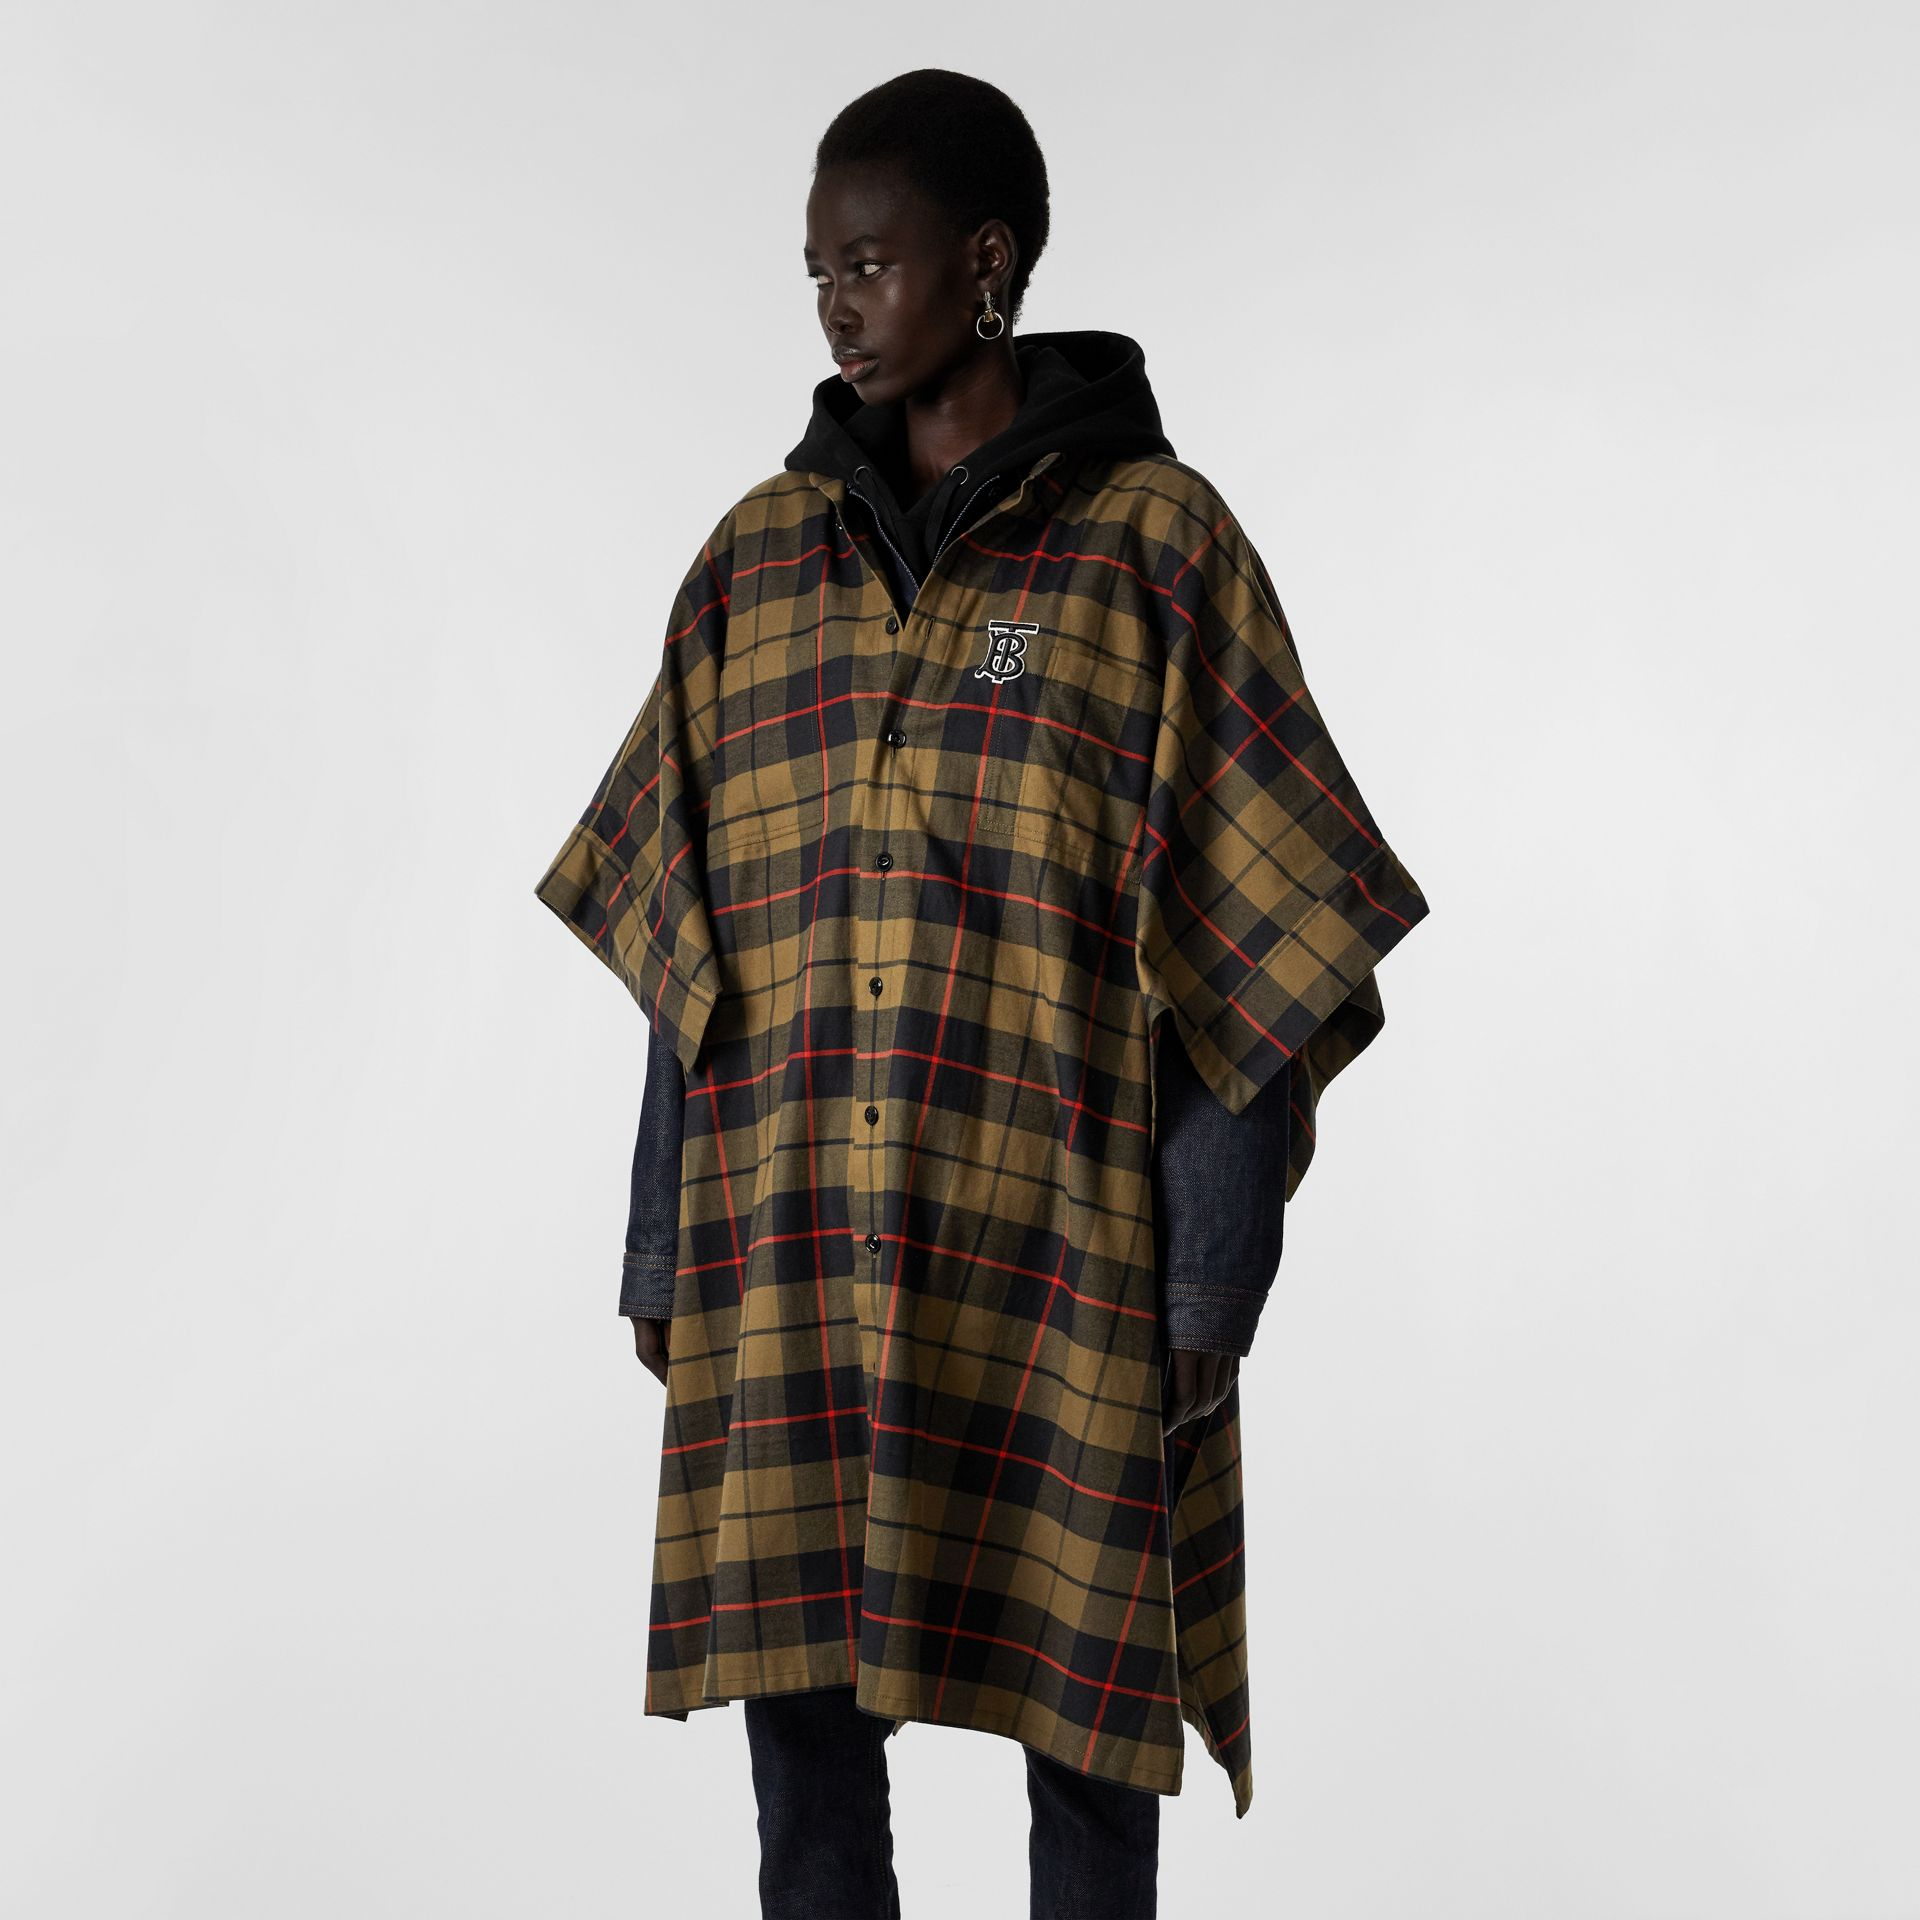 Monogram Motif Check Cotton Oversized Poncho in Military Olive | Burberry Hong Kong - gallery image 5